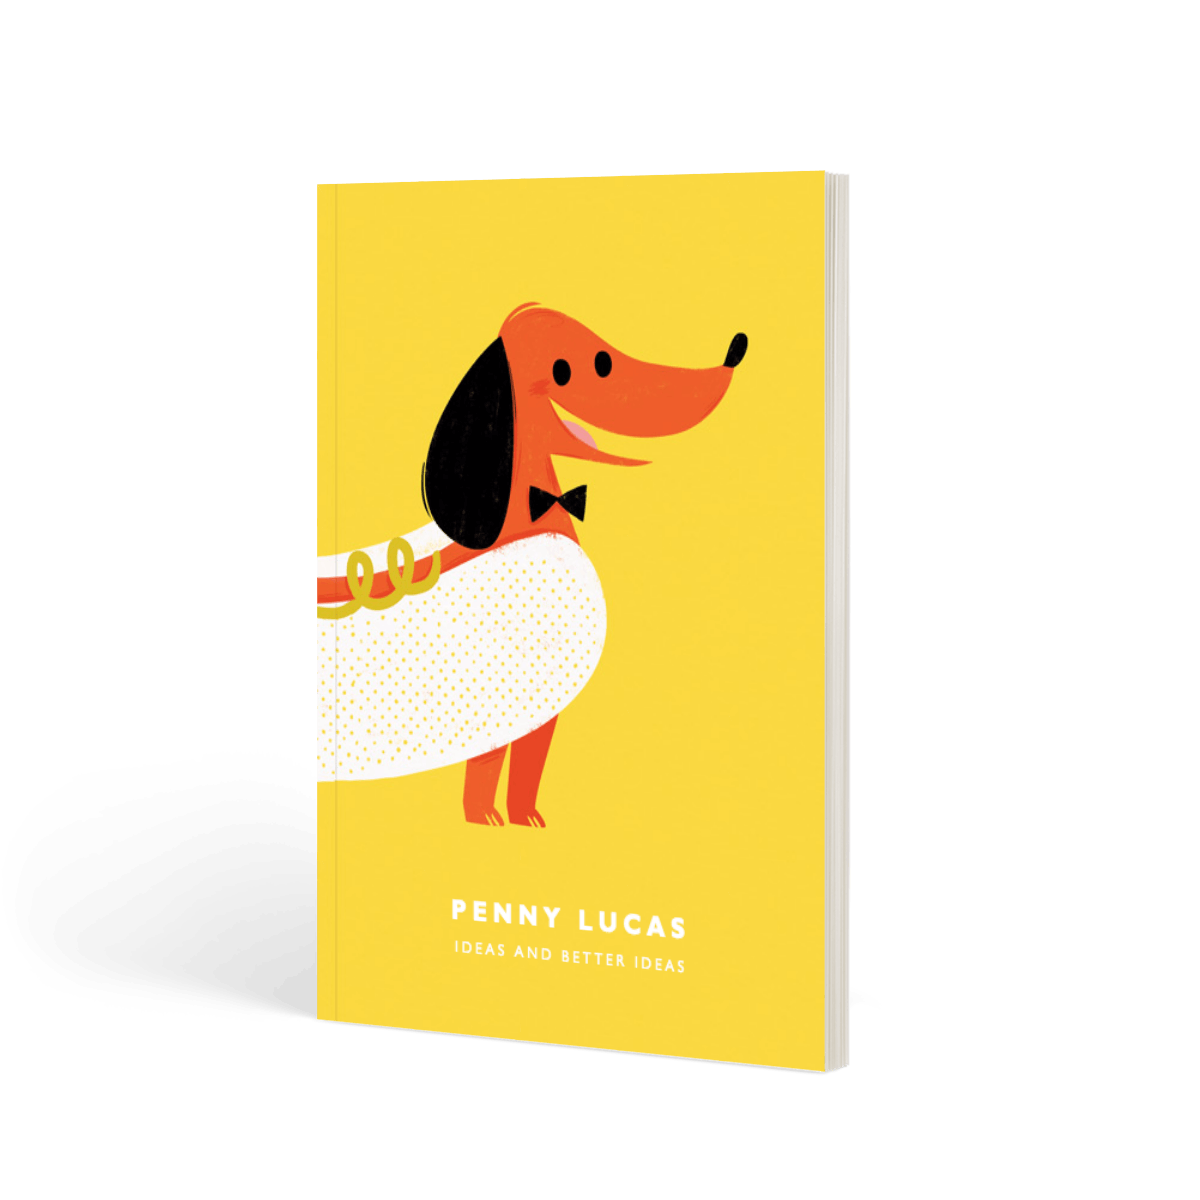 Https%3a%2f%2fwww.papier.com%2fproduct image%2f54644%2f6%2fhappy hot dog 13136 front 1542298737.png?ixlib=rb 1.1